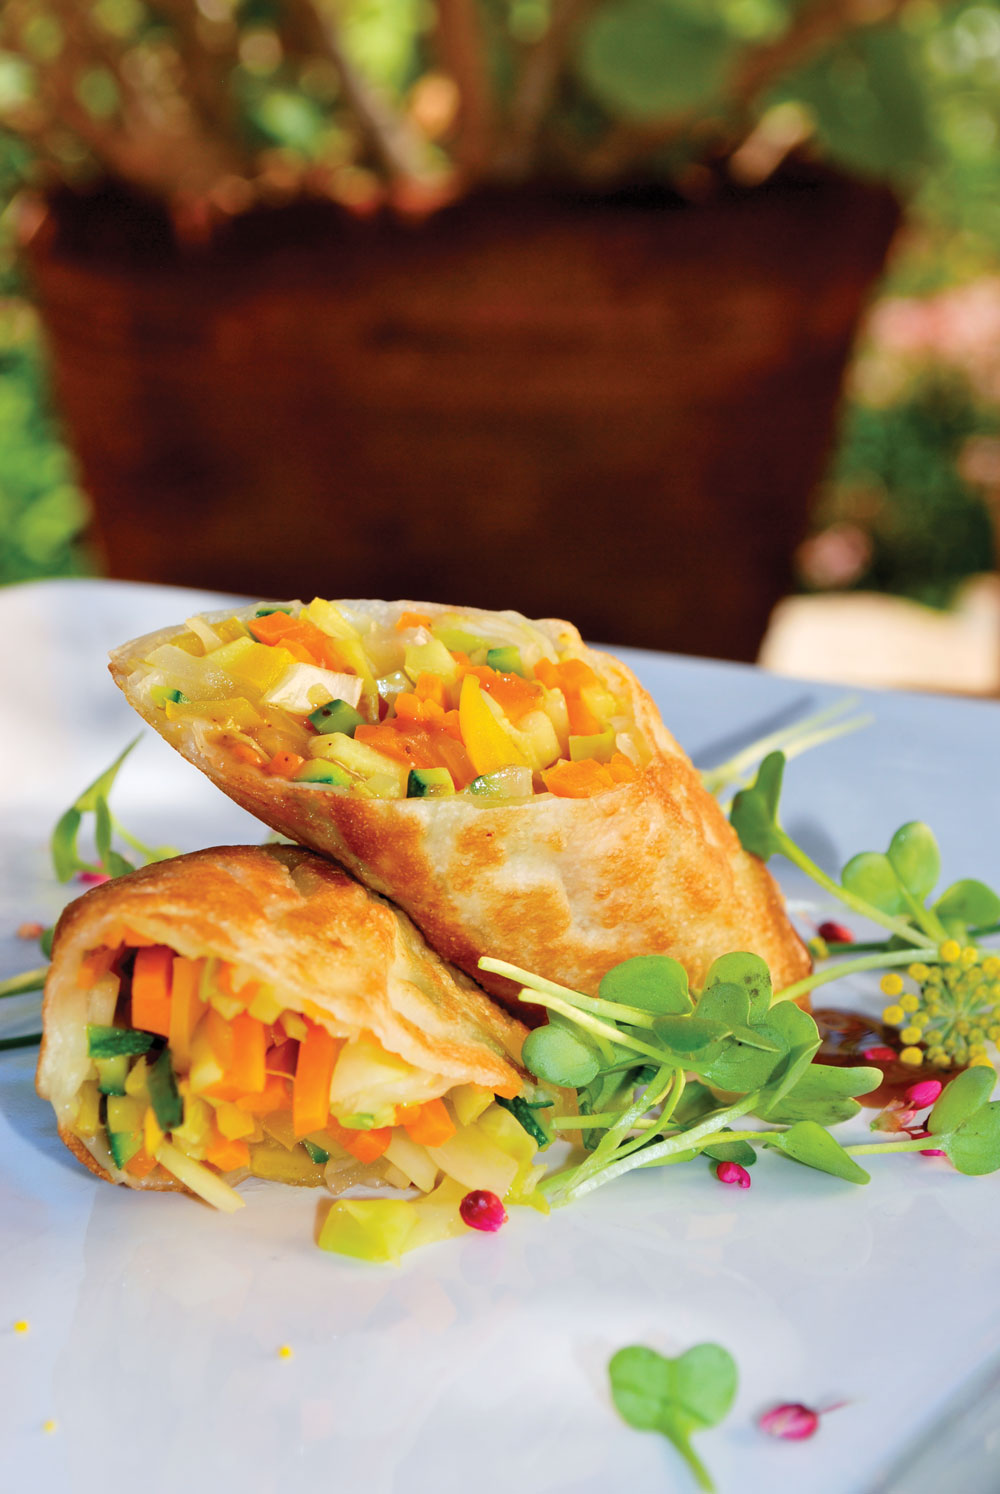 how to make egg rolls, healthy food, healthy recipes, egg roll recipe, health retreat, health spa, destination spa